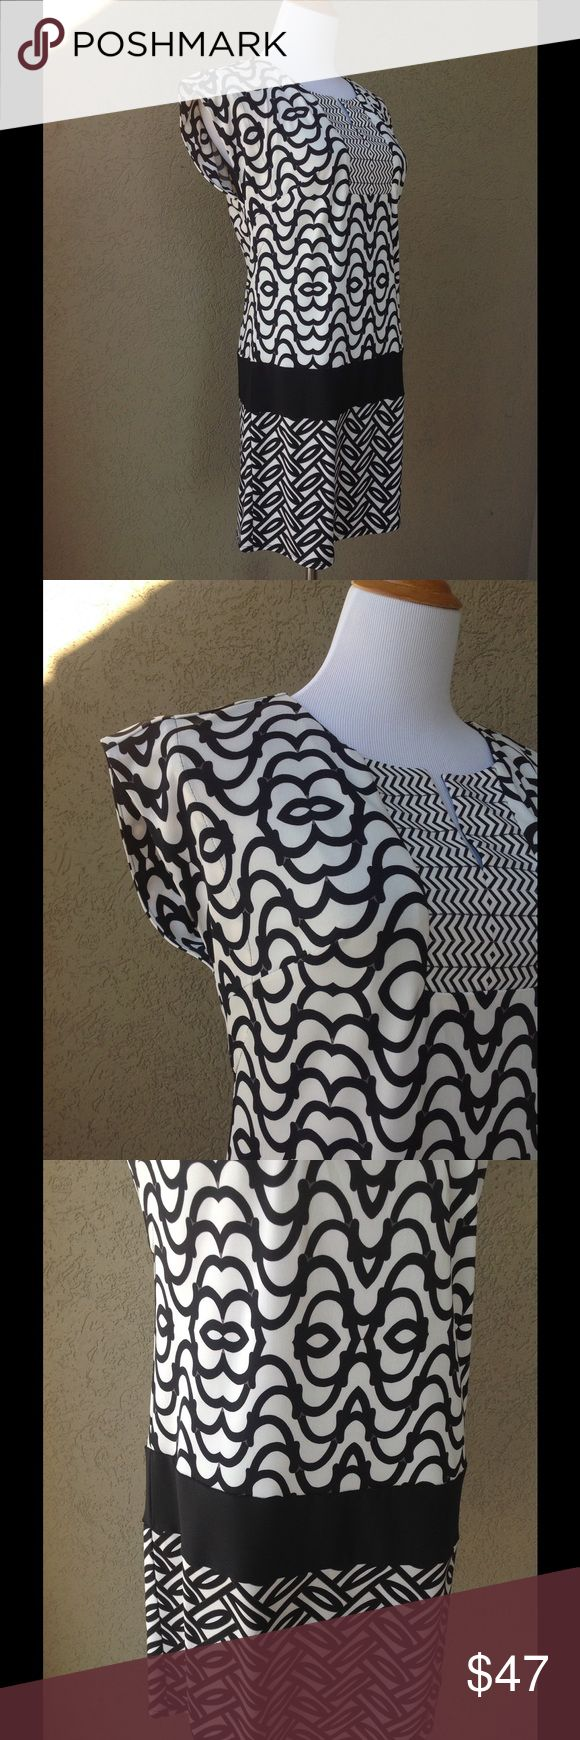 "LAUNDRY SHELLI SEGAL Drop Waist Geometric Dress Striking black and white patterns with a drop waist. Split neck. Fully lined. Approx measurements laid flat: U-U 18"" across, waist 17"" acr, hips 19.5"" acr, length 33.5"". Machine wash cold. New condition, no stains inside or out, no pulls, holes or loose seams. Laundry by Shelli Segal Dresses"